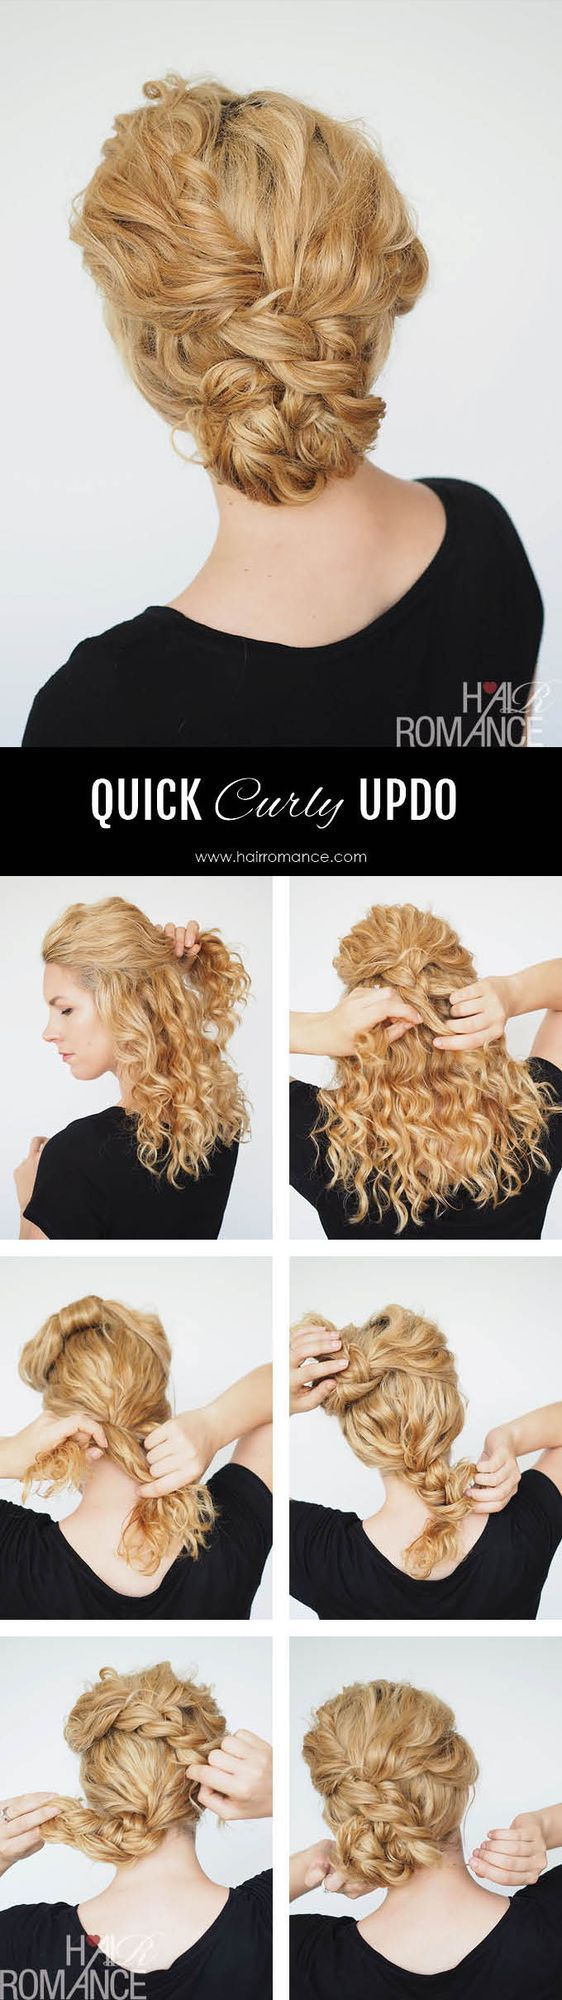 This quick curly updo is going to be your new curly go-to style.  I love wearing my curls out but on day two (and three, and four..) I'll usually put my hair up. This style is super quick and takes le